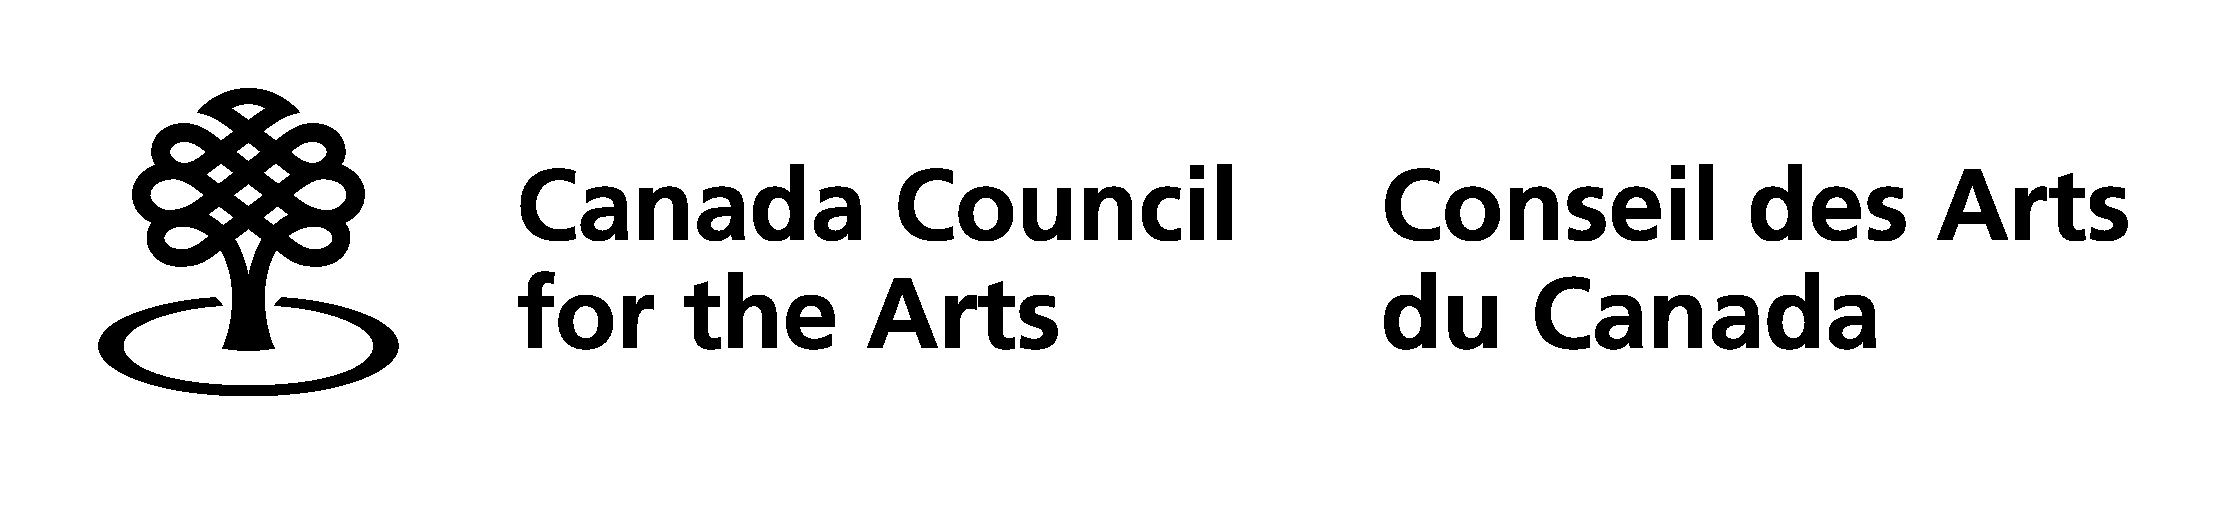 - Mercurial Sights - I am grateful to have been offered a generous 2018 Media Arts grant from the Canada Council for the Arts for an upcoming interactive video installation.